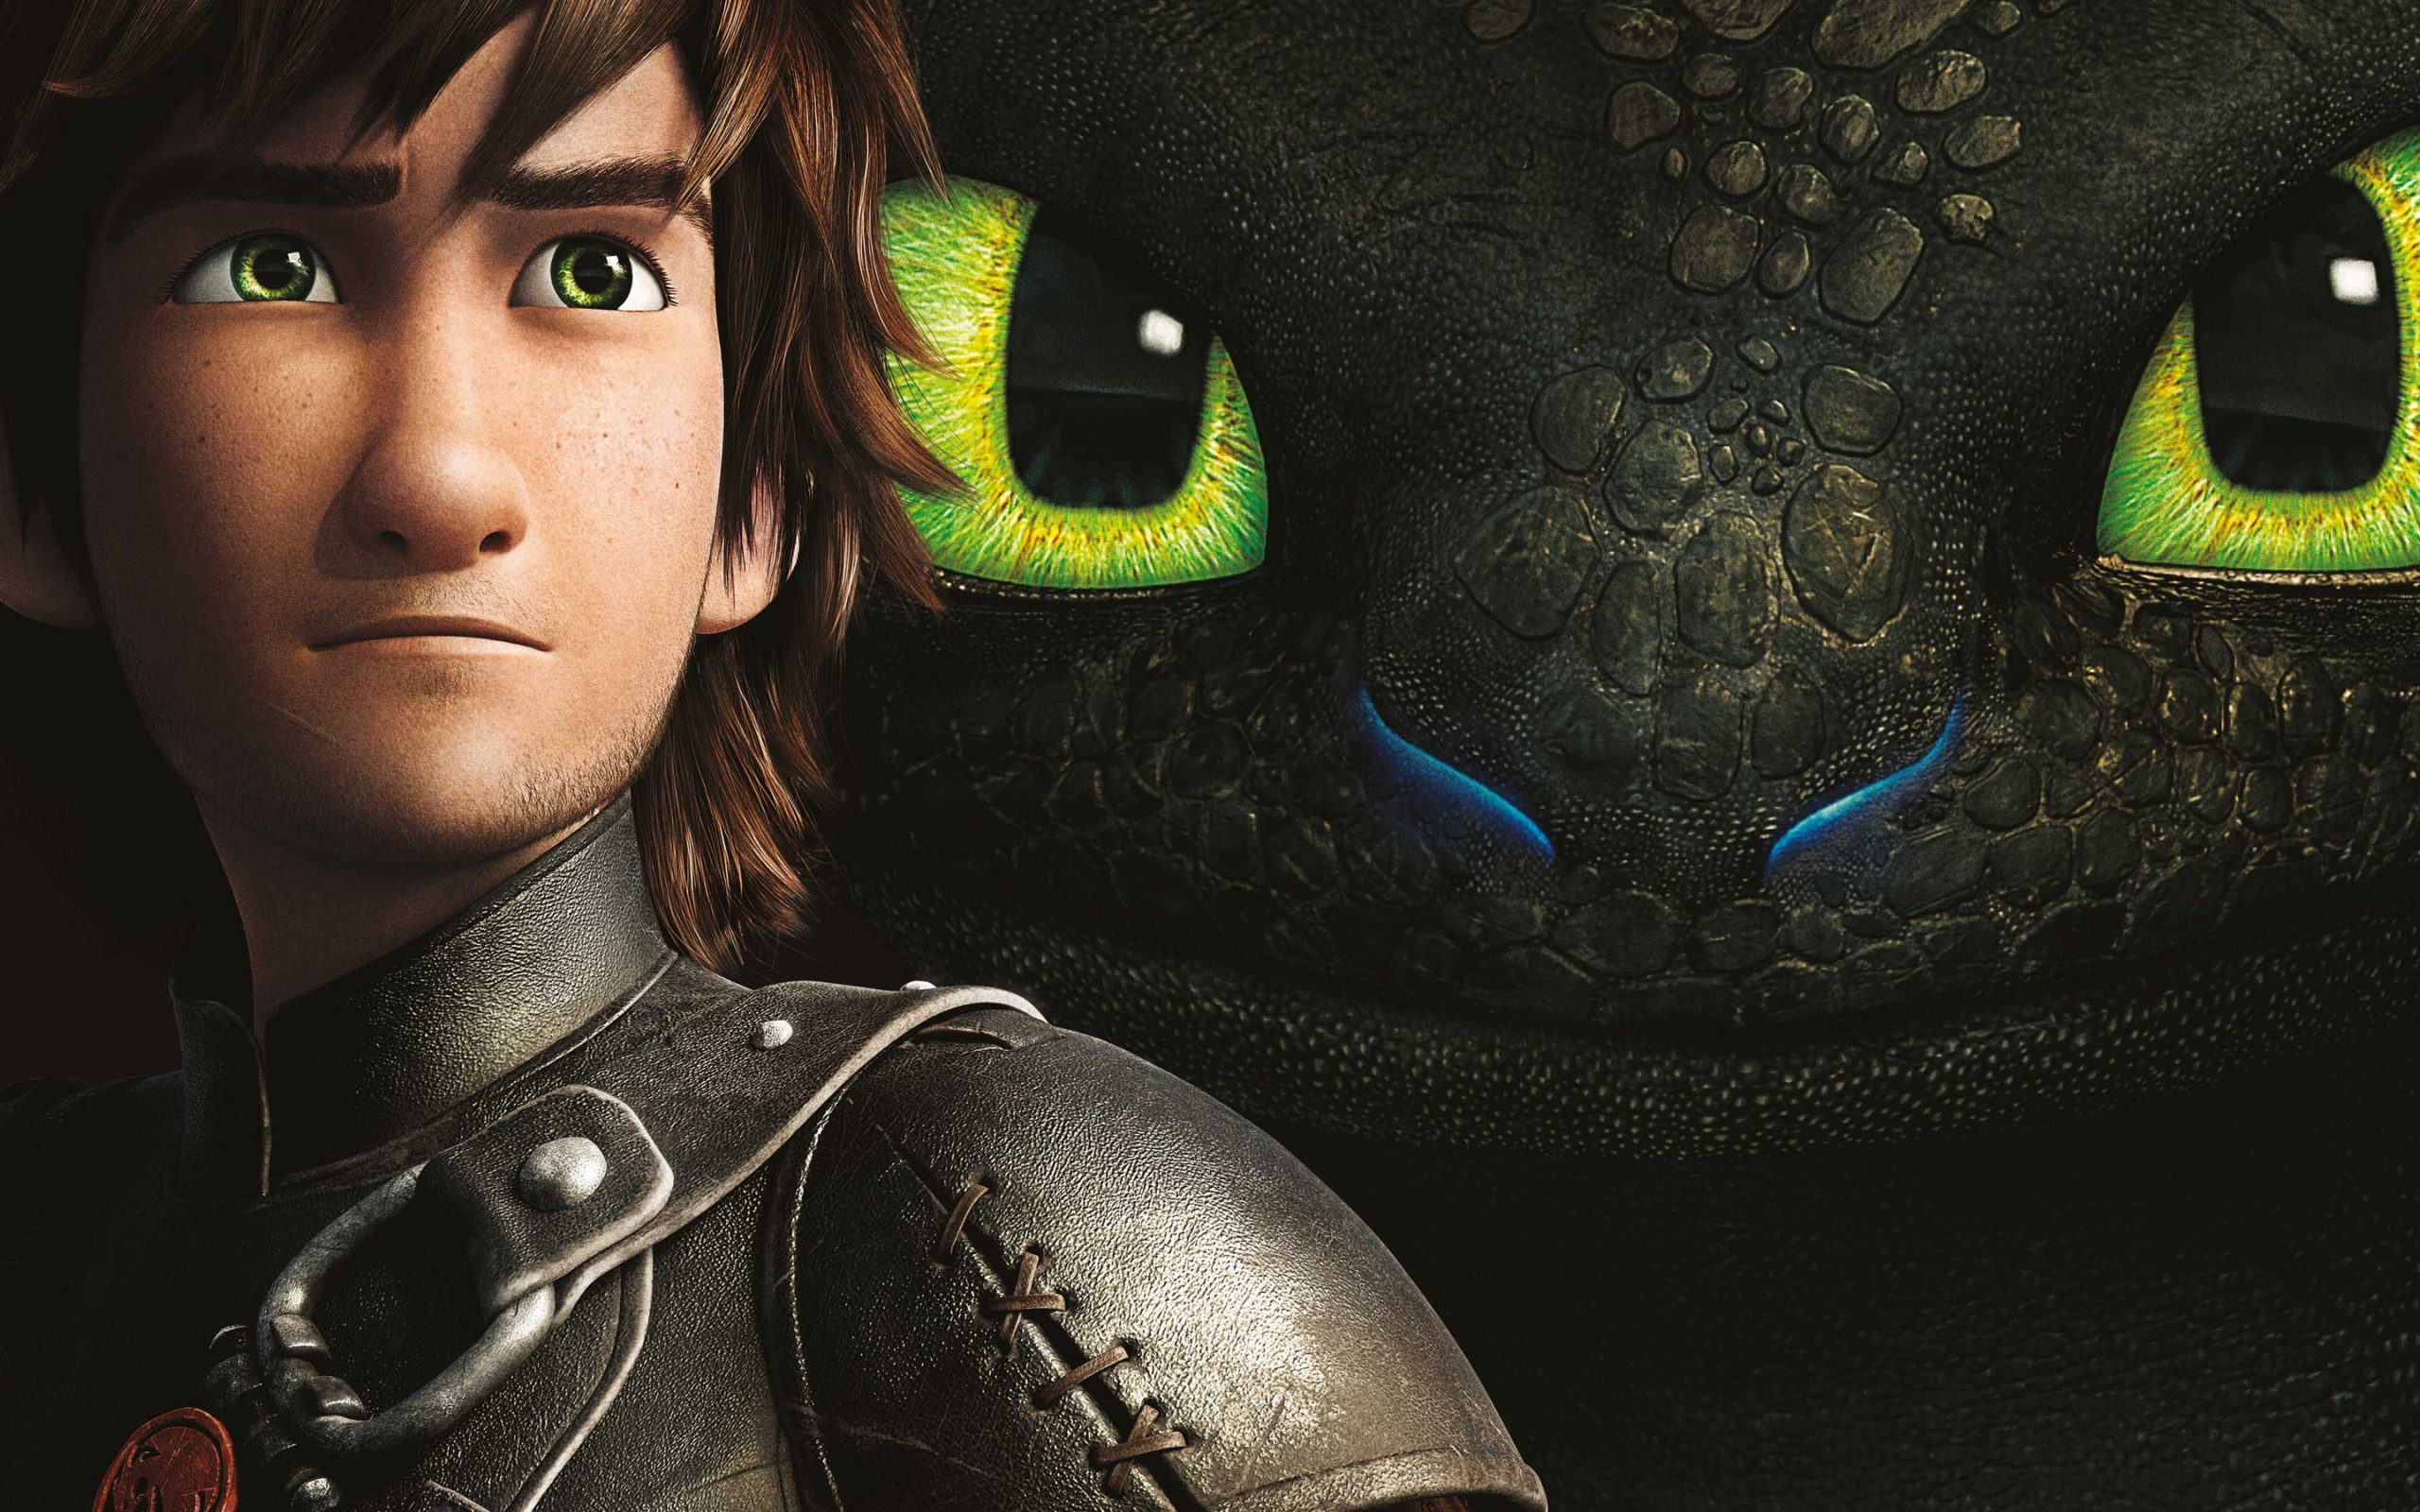 148 How To Train Your Dragon 2 Hd Wallpapers  Backgrounds  Wallpaper Abyss